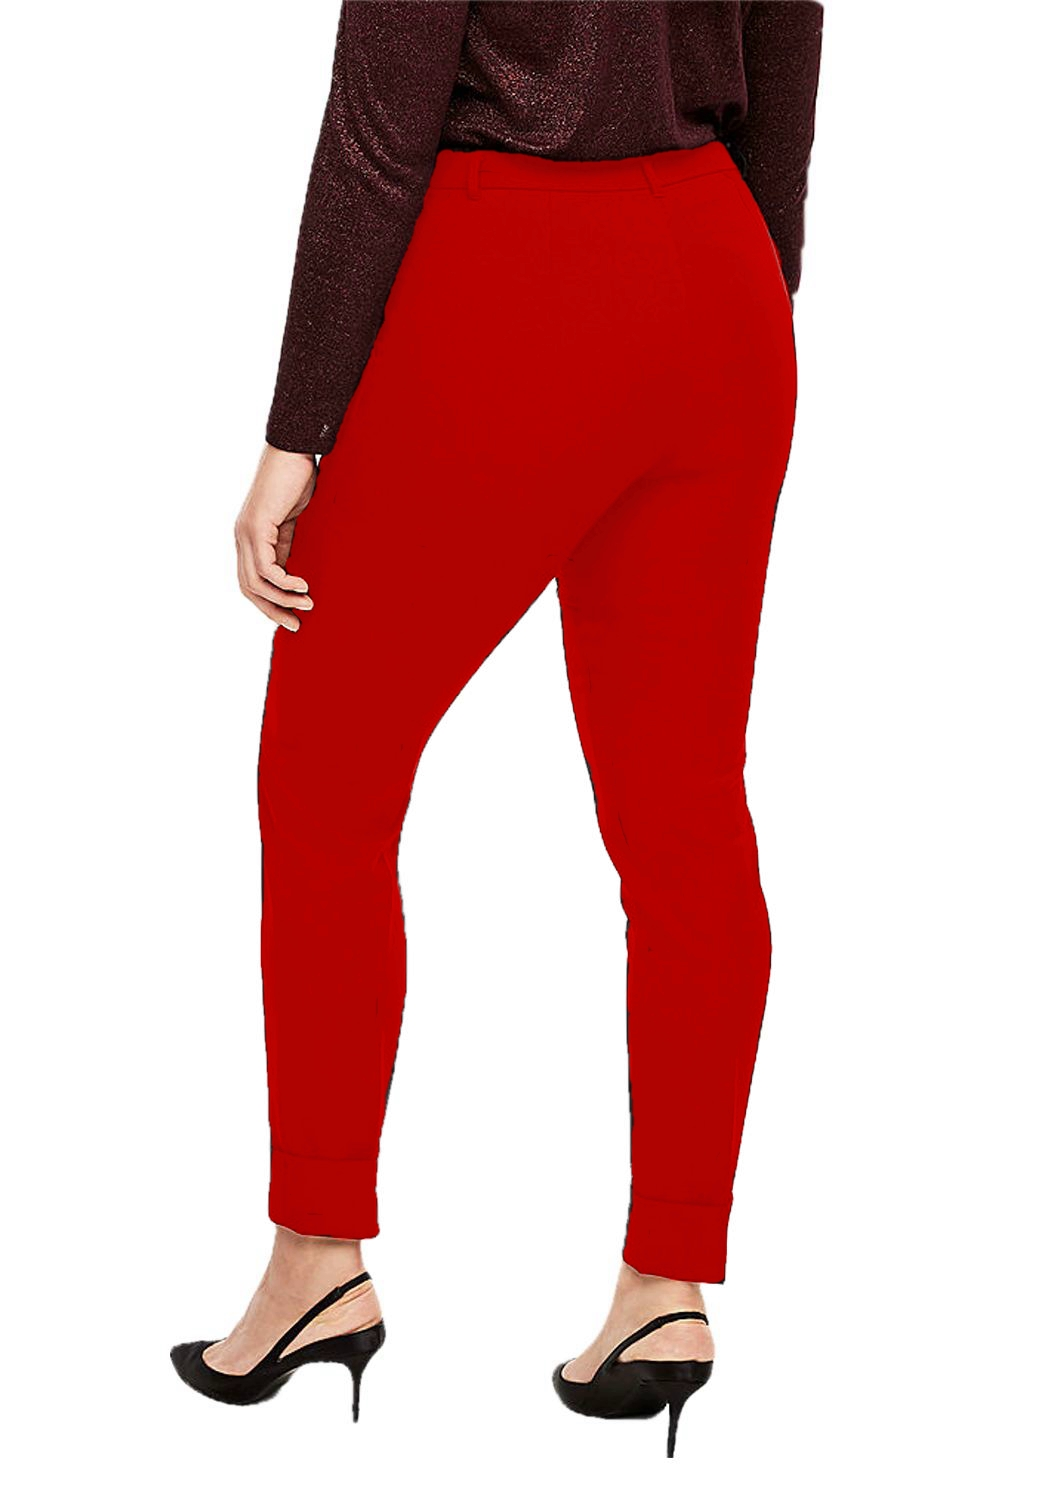 Patrorna Womens Slim Fit Cigarette Trousers (PT8A69_Red_2XL) in Red